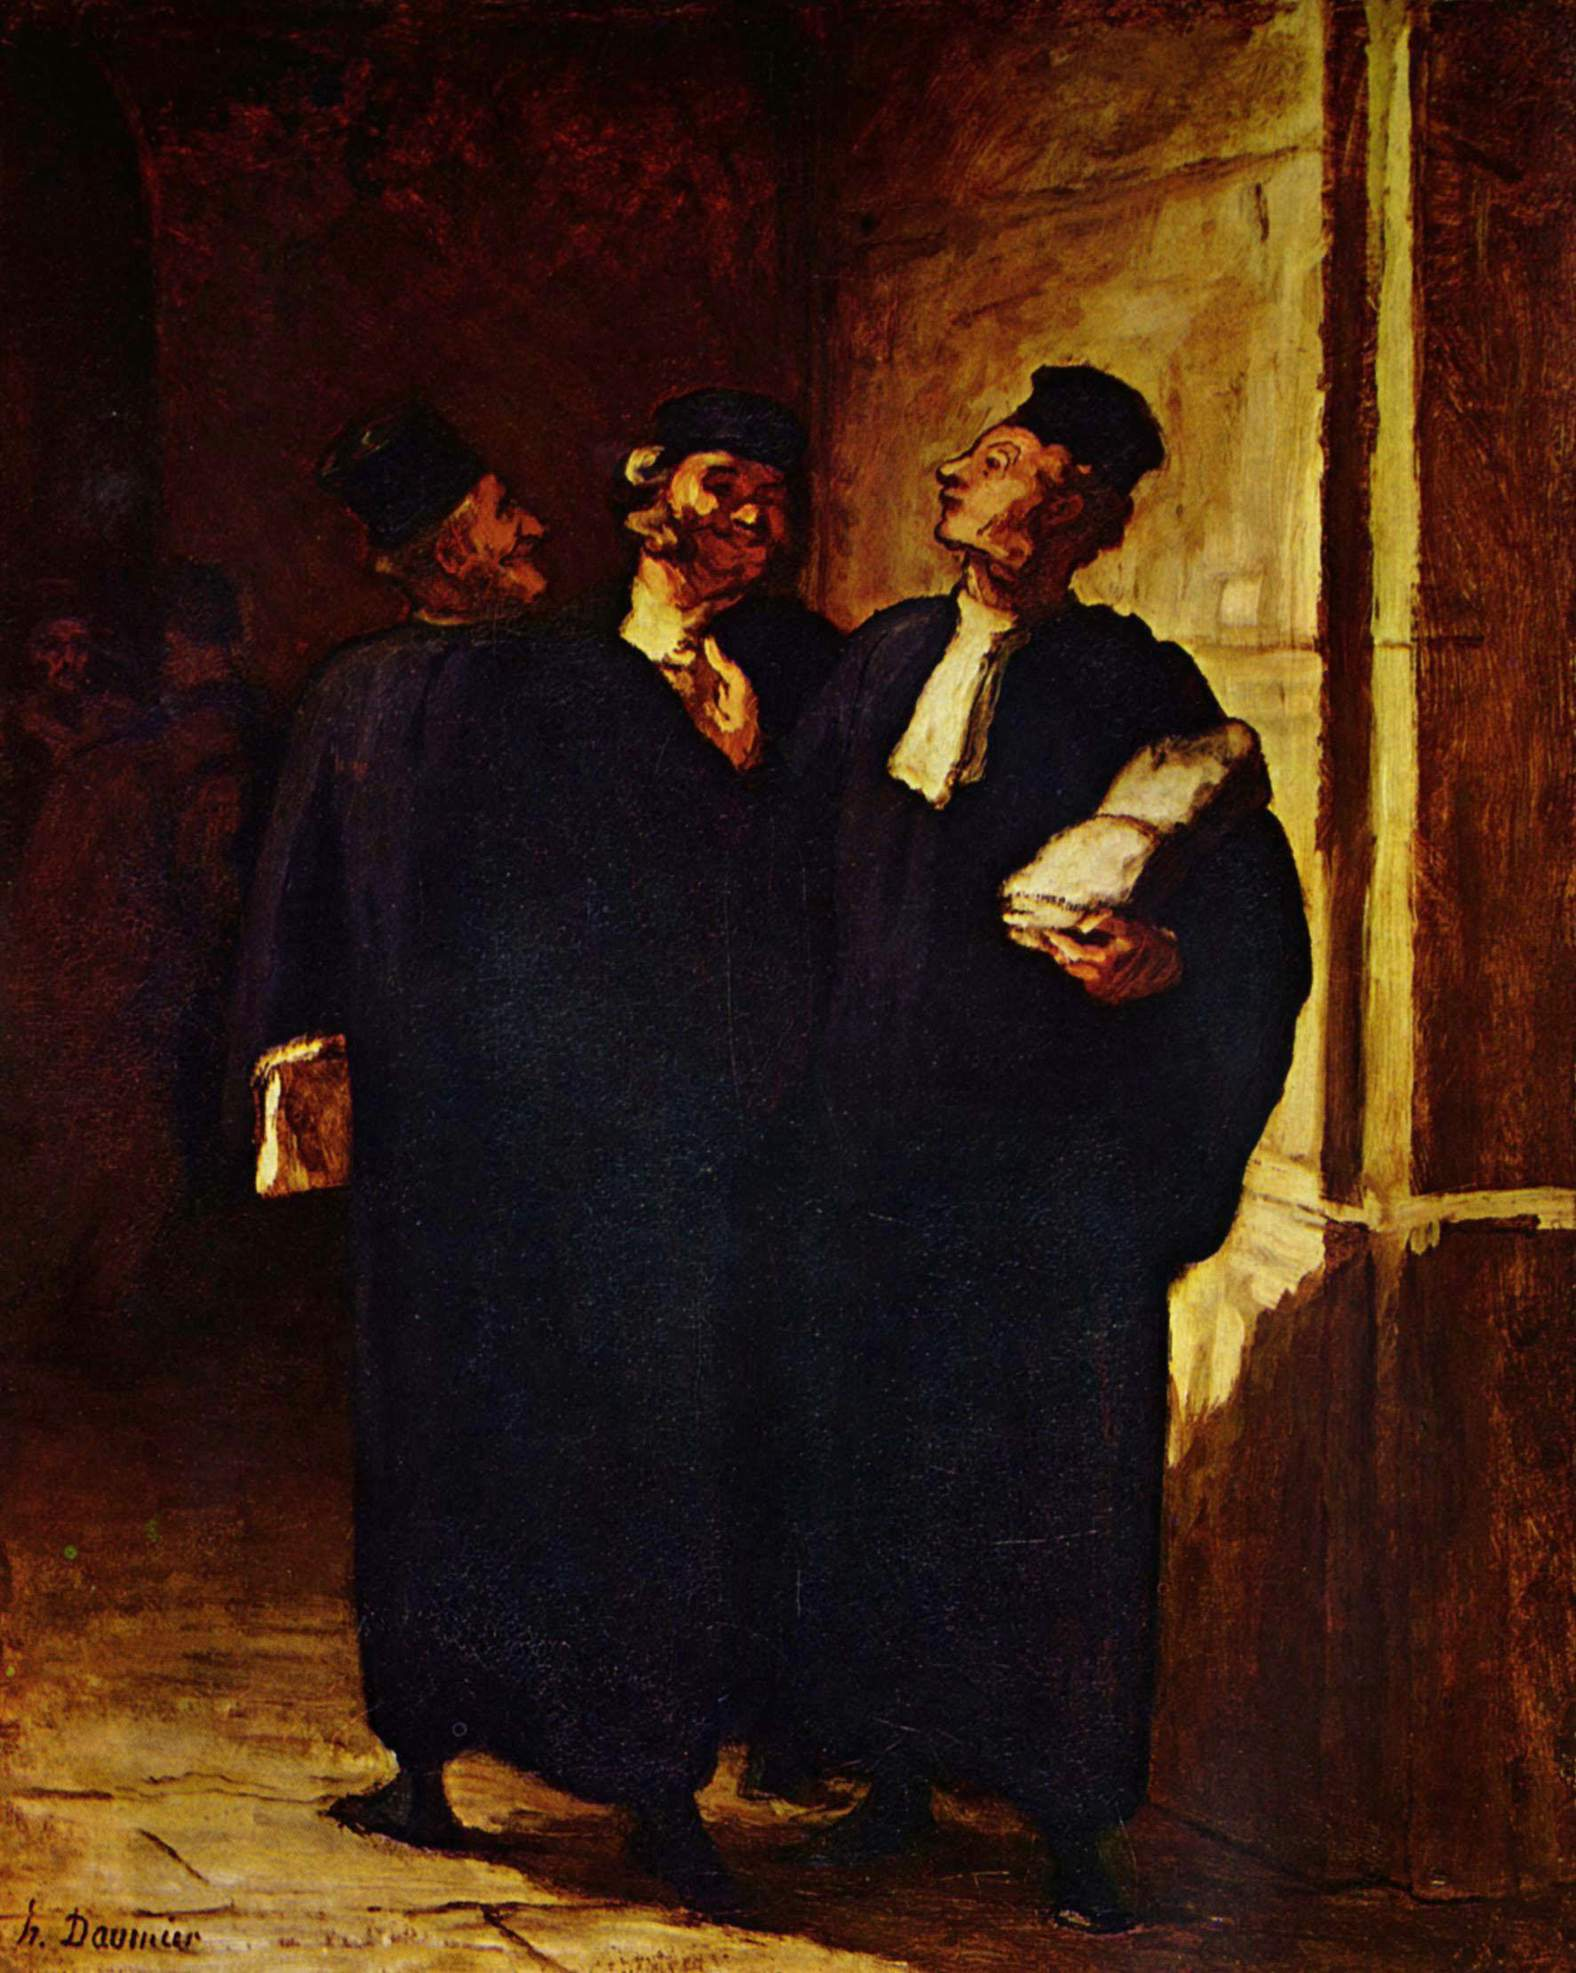 https://i0.wp.com/upload.wikimedia.org/wikipedia/commons/7/70/Honor%C3%A9_Daumier_018.jpg